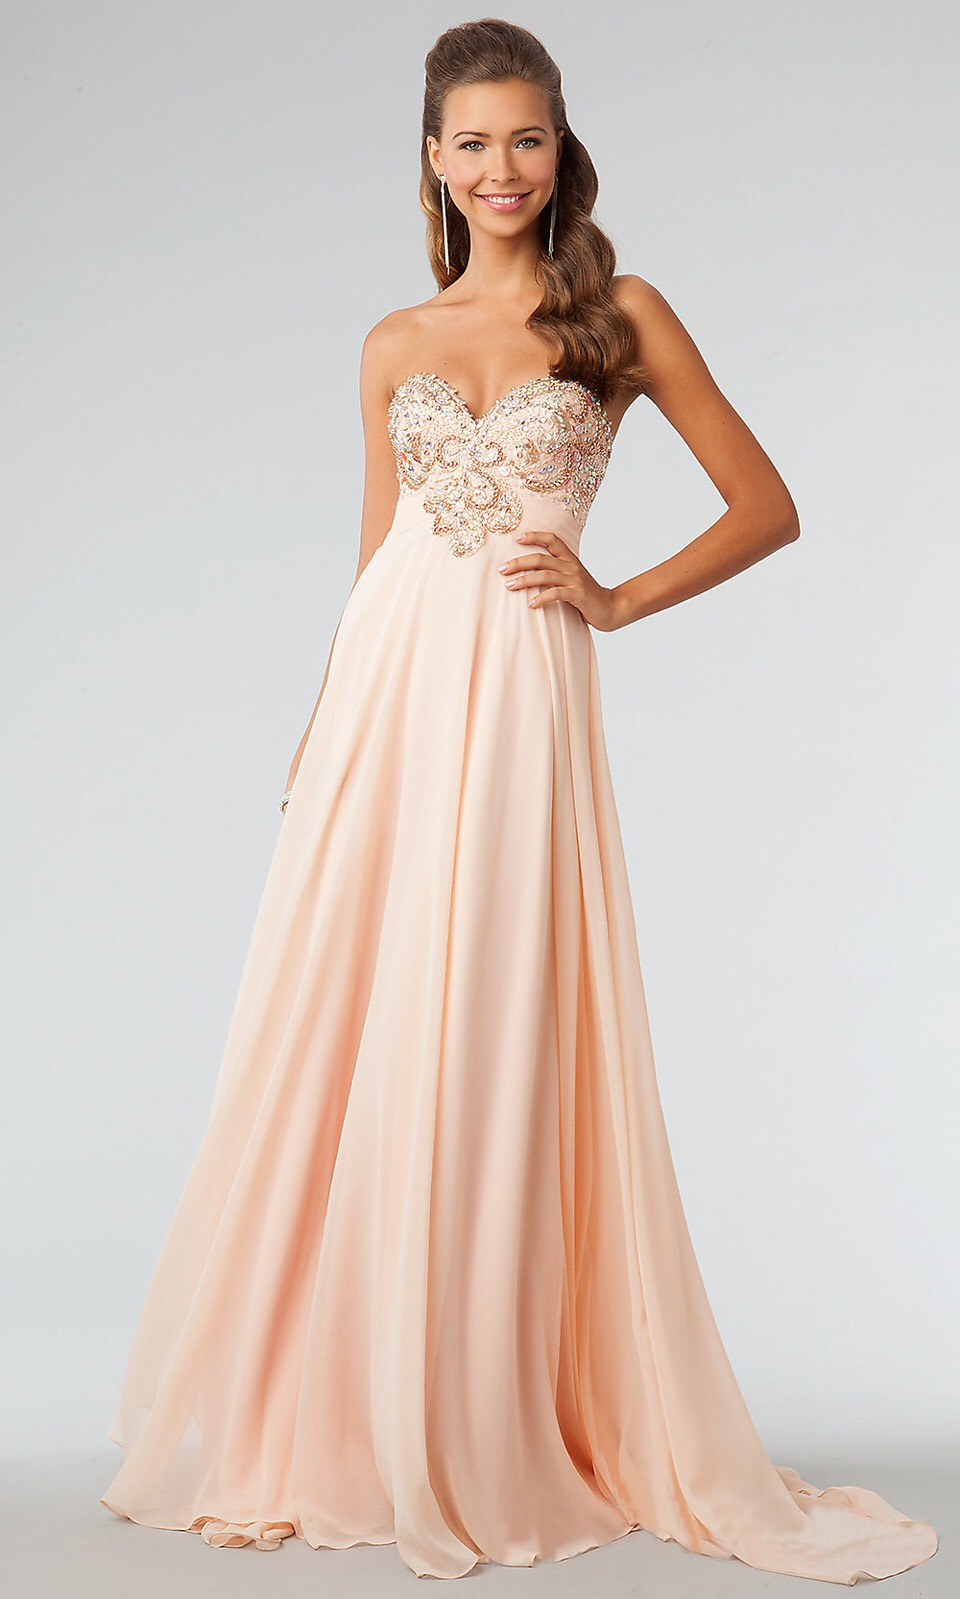 Another favorite it a peach and I love the peach,pinks I like light colors